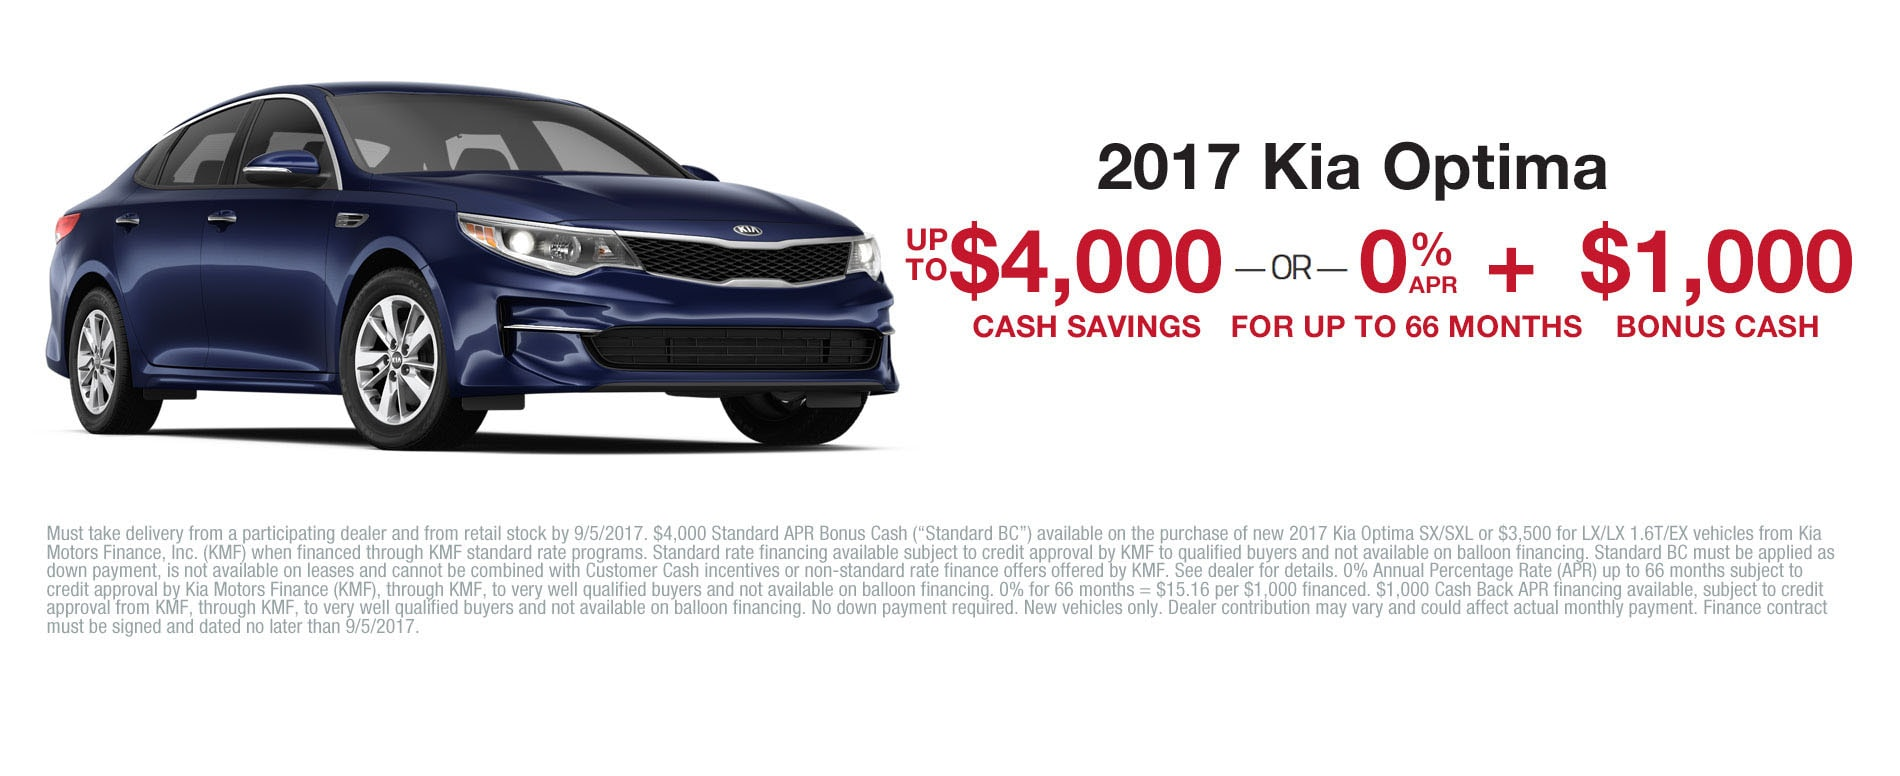 Get $4,000 cash savings or 0% APR financing up to 66 months plus $1,000 in cash savings when you purchase a 2017 Kia Optima